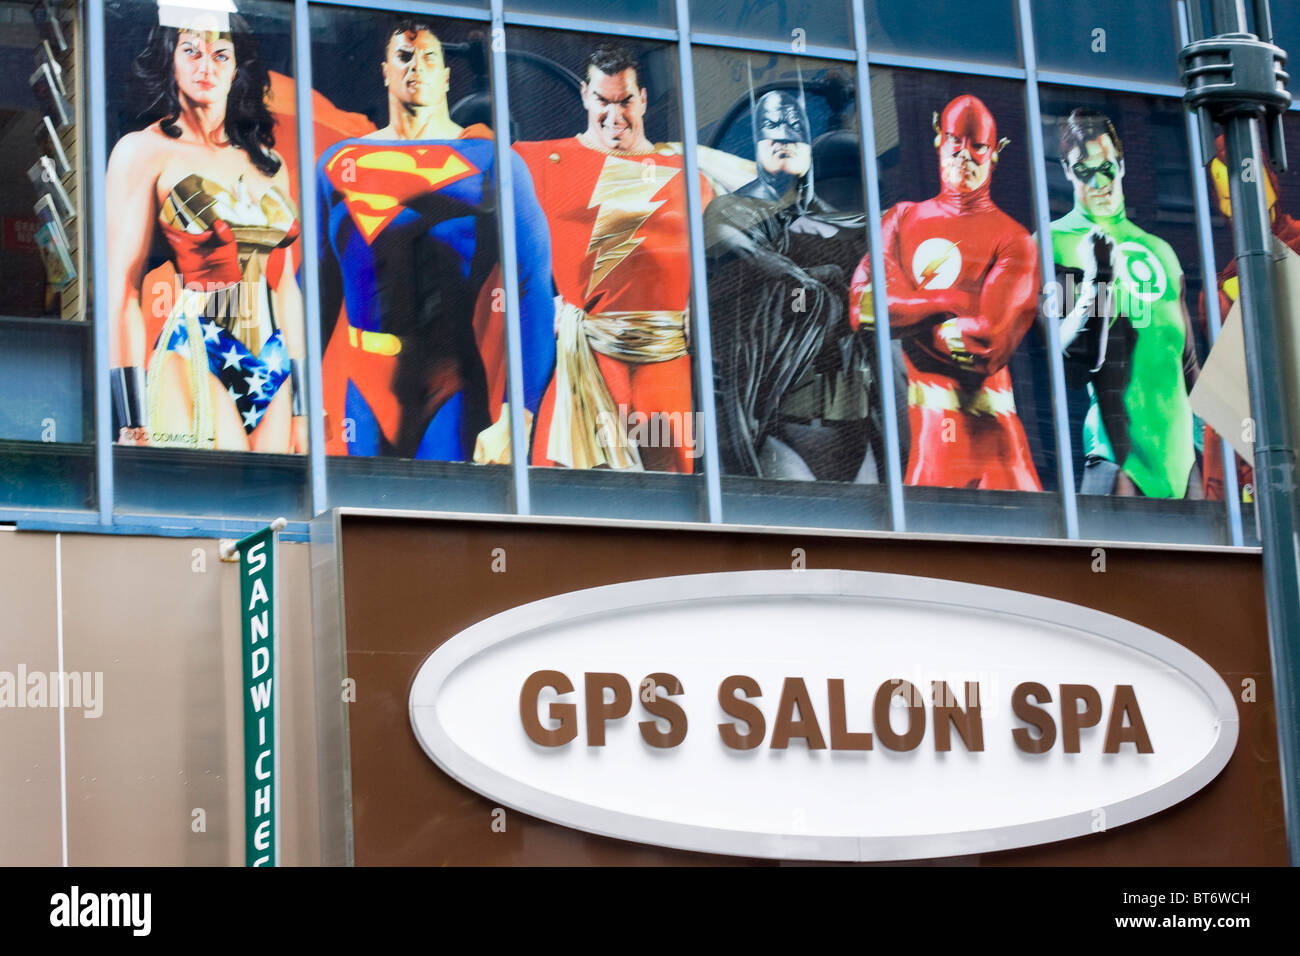 Superheros on a shop front - Stock Image